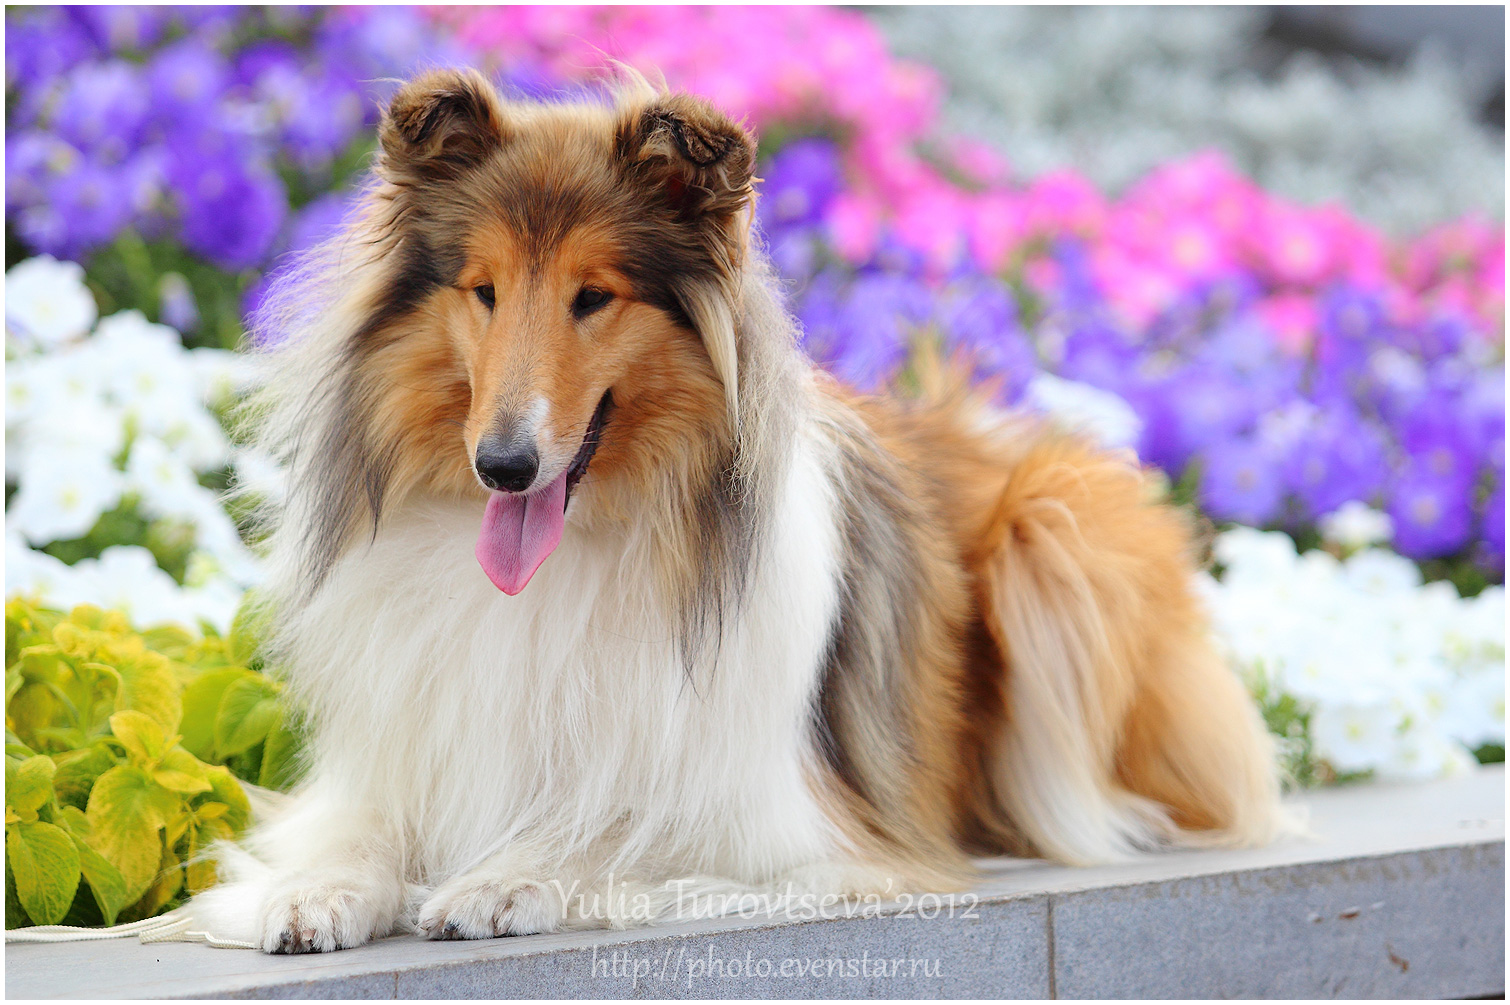 Collie Rough dog in flowers wallpaper